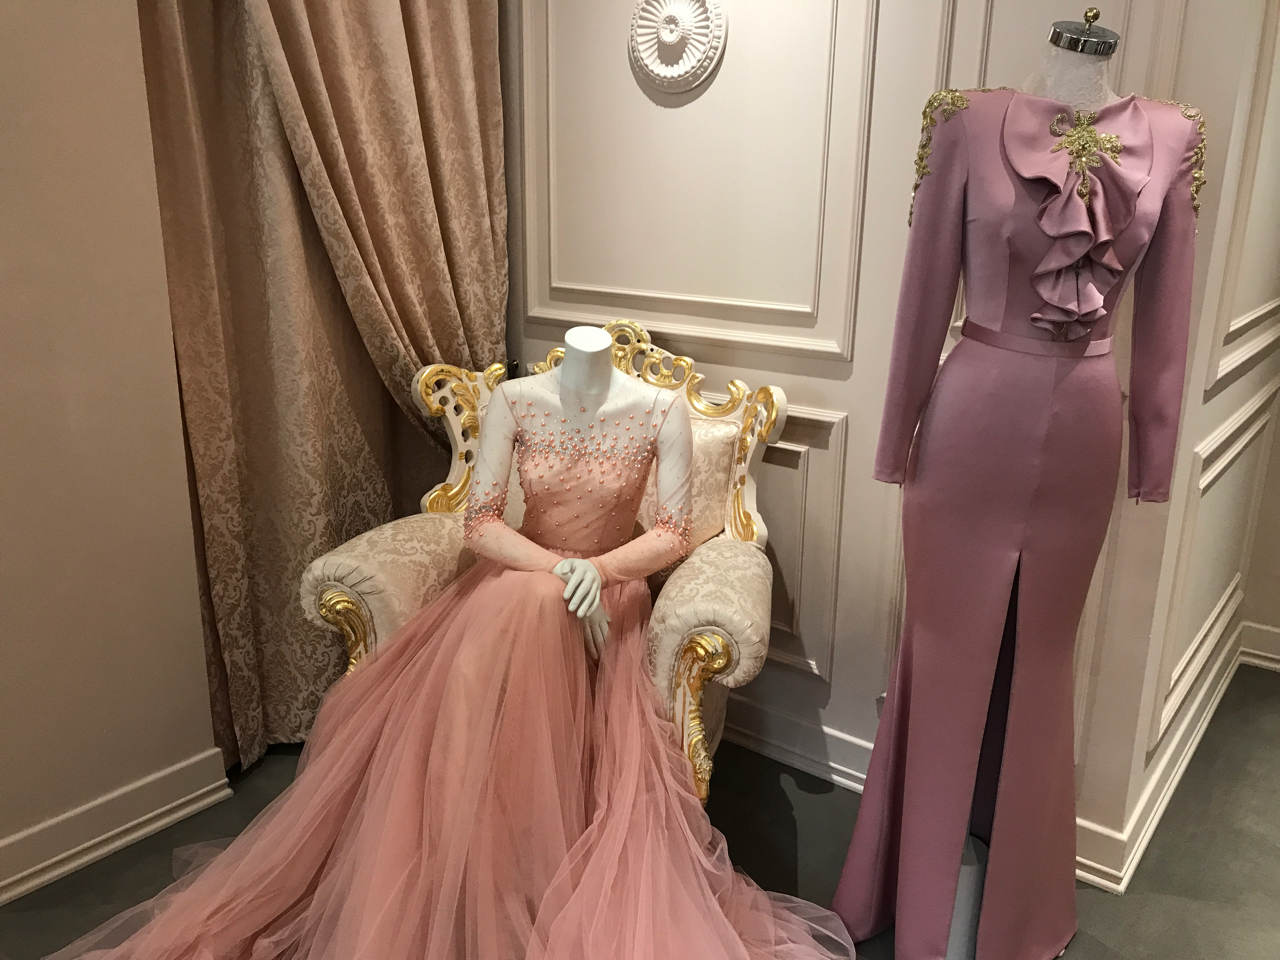 A pink beaded pearl princess tulle gown and a mauve silk dress as seen at the haute couture atelier João Rôlo Couture in Lisbon, Portugal. Photo Courtesy of FoodWaterShoes